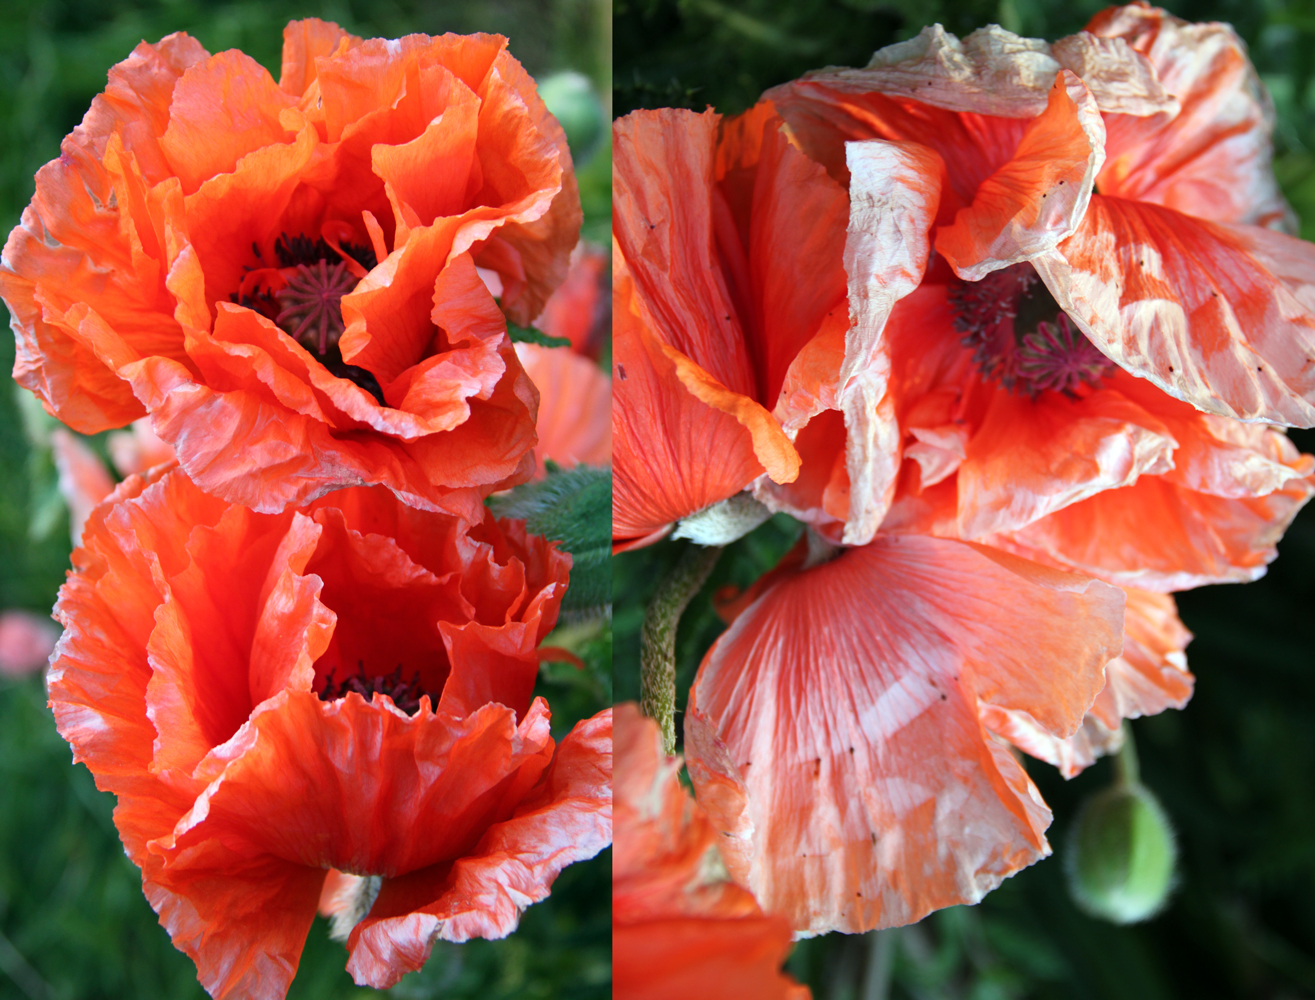 gigantic poppies